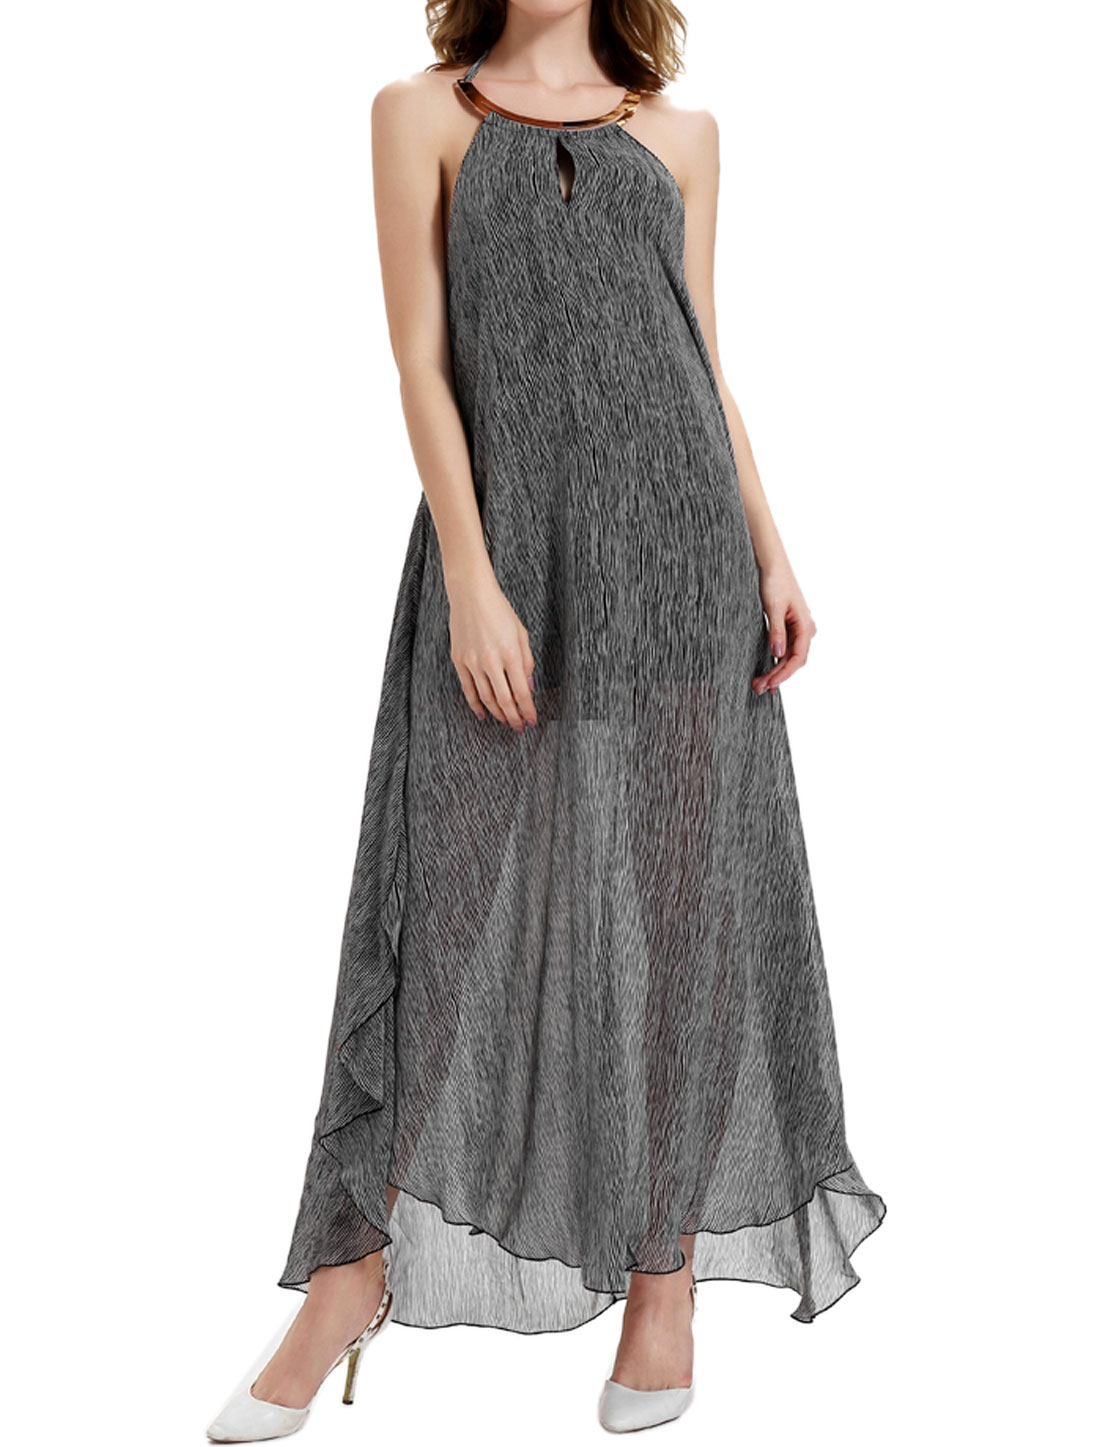 Women Backless Printed Split High Low Chiffon Maxi Dress Black M